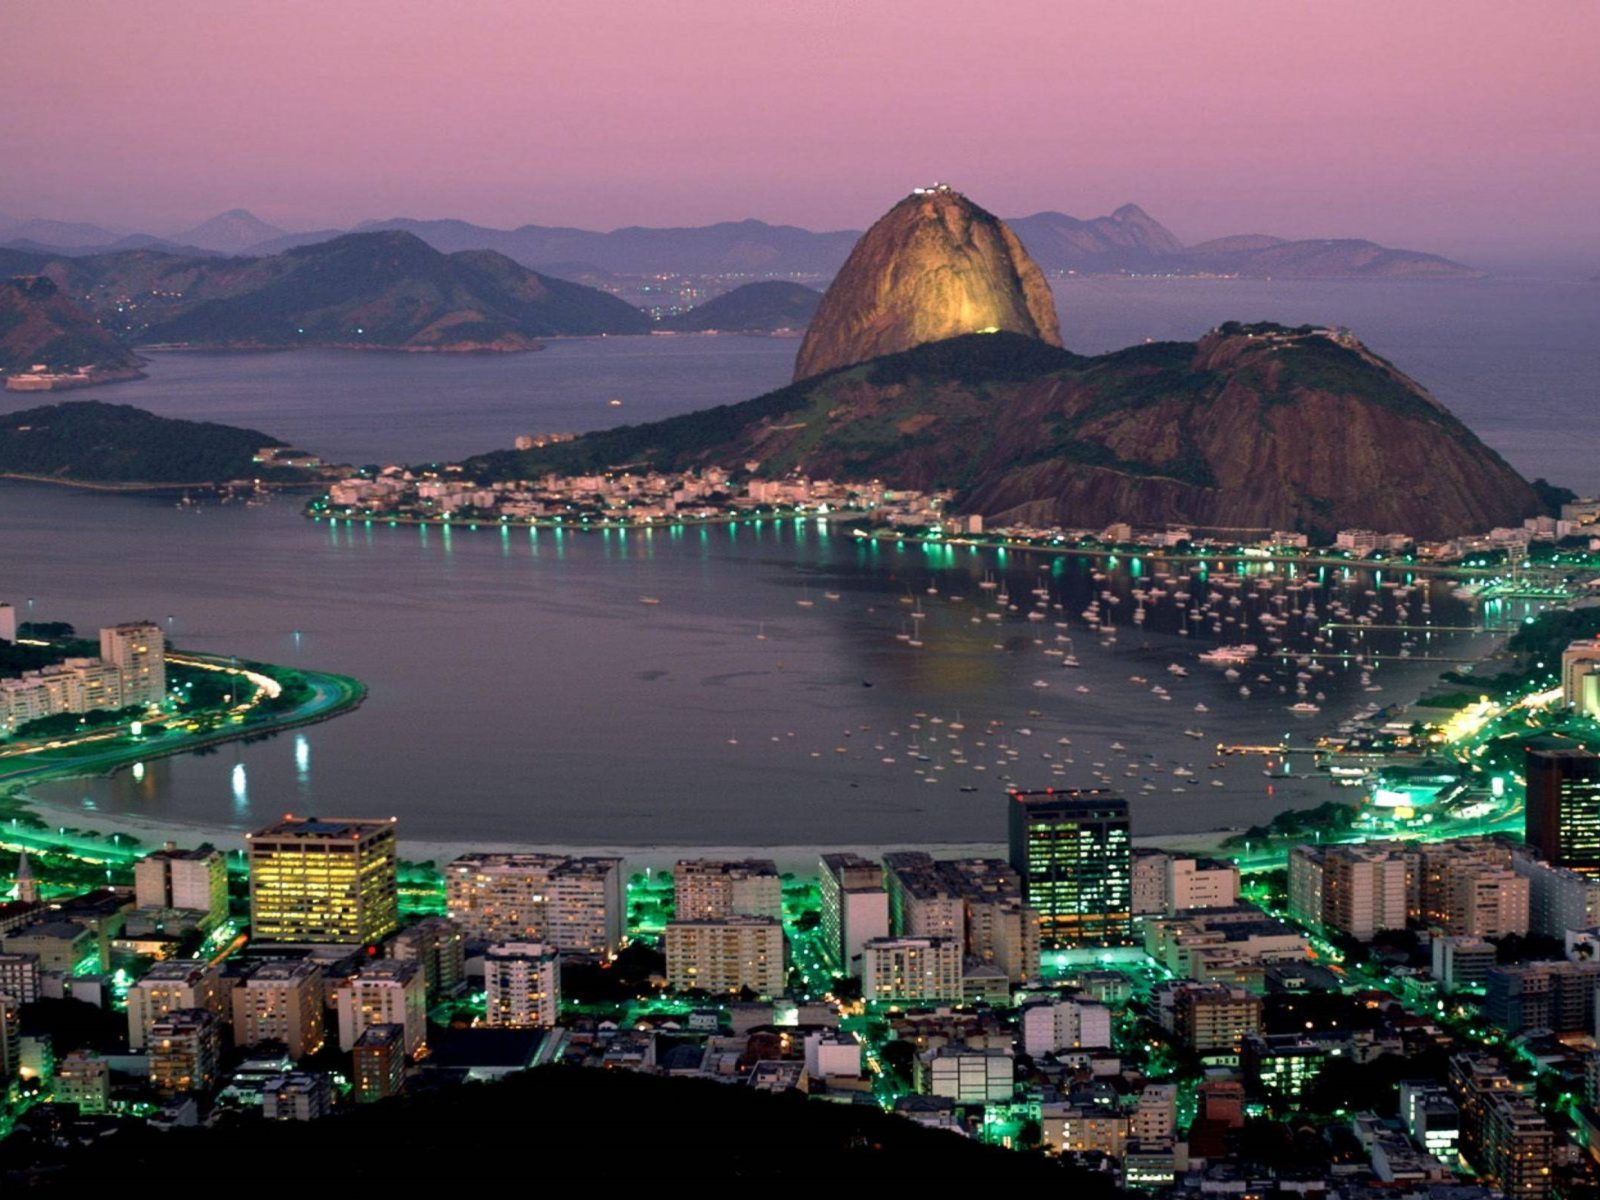 Free Hd Wallpaper For Android Tablet Rio De Janeiro At Night Wallpaper Hd 235364 Wallpapers13 Com